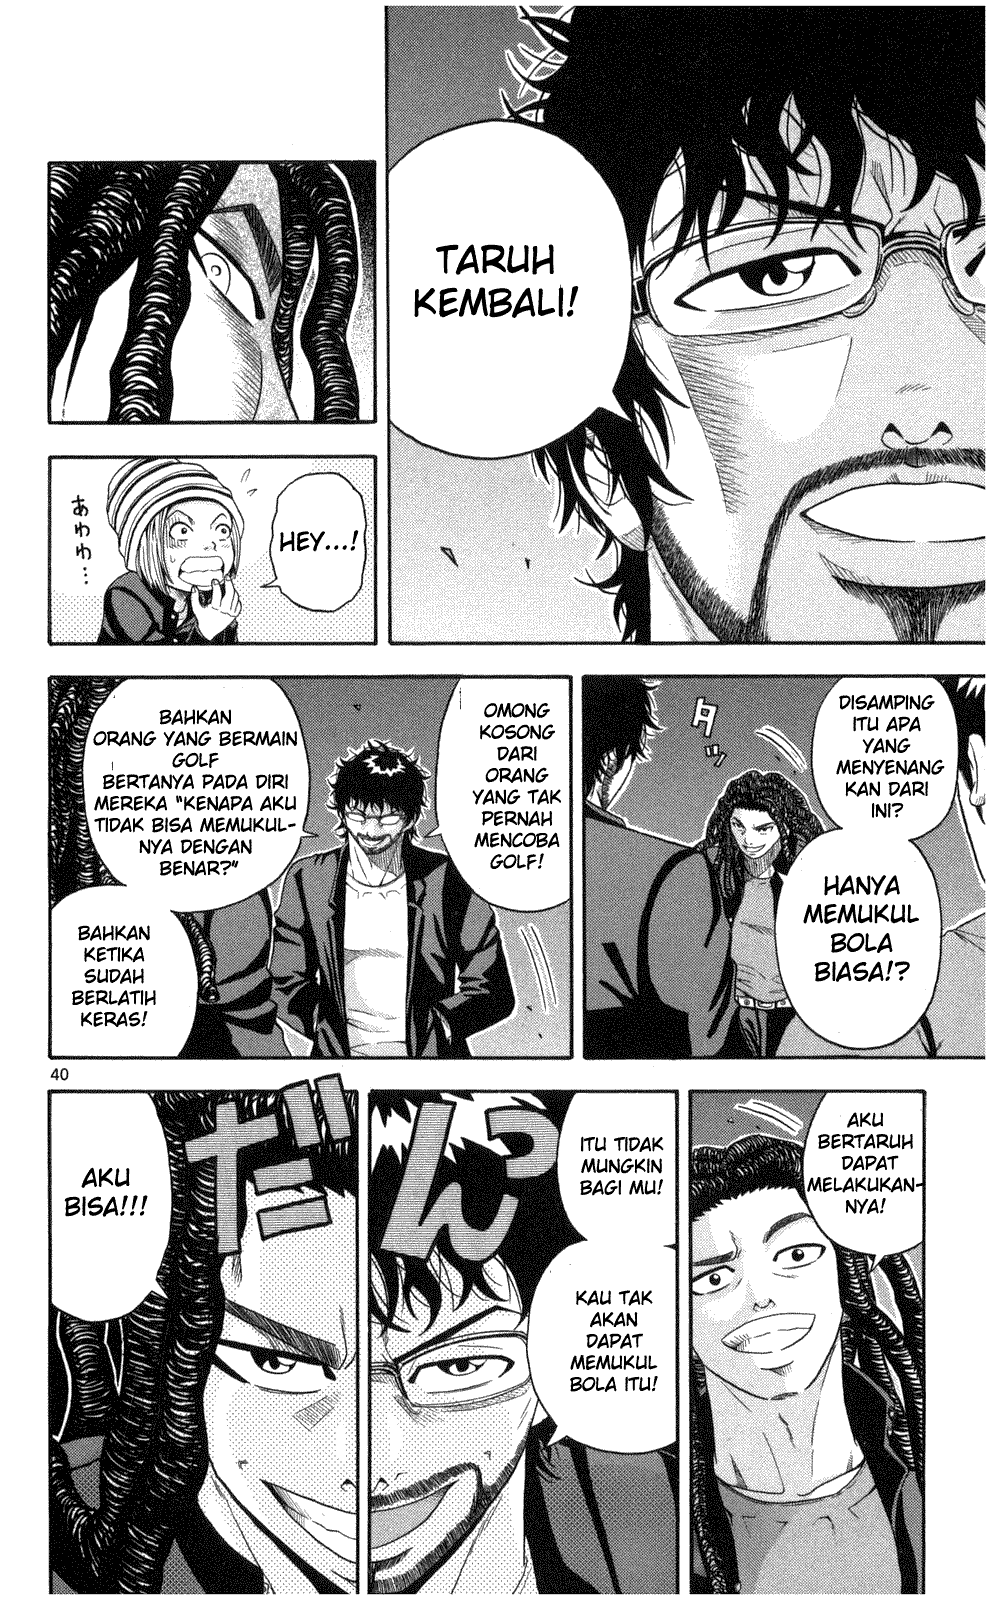 Komik king golf 001 - chapter 1 2 Indonesia king golf 001 - chapter 1 Terbaru 40|Baca Manga Komik Indonesia|